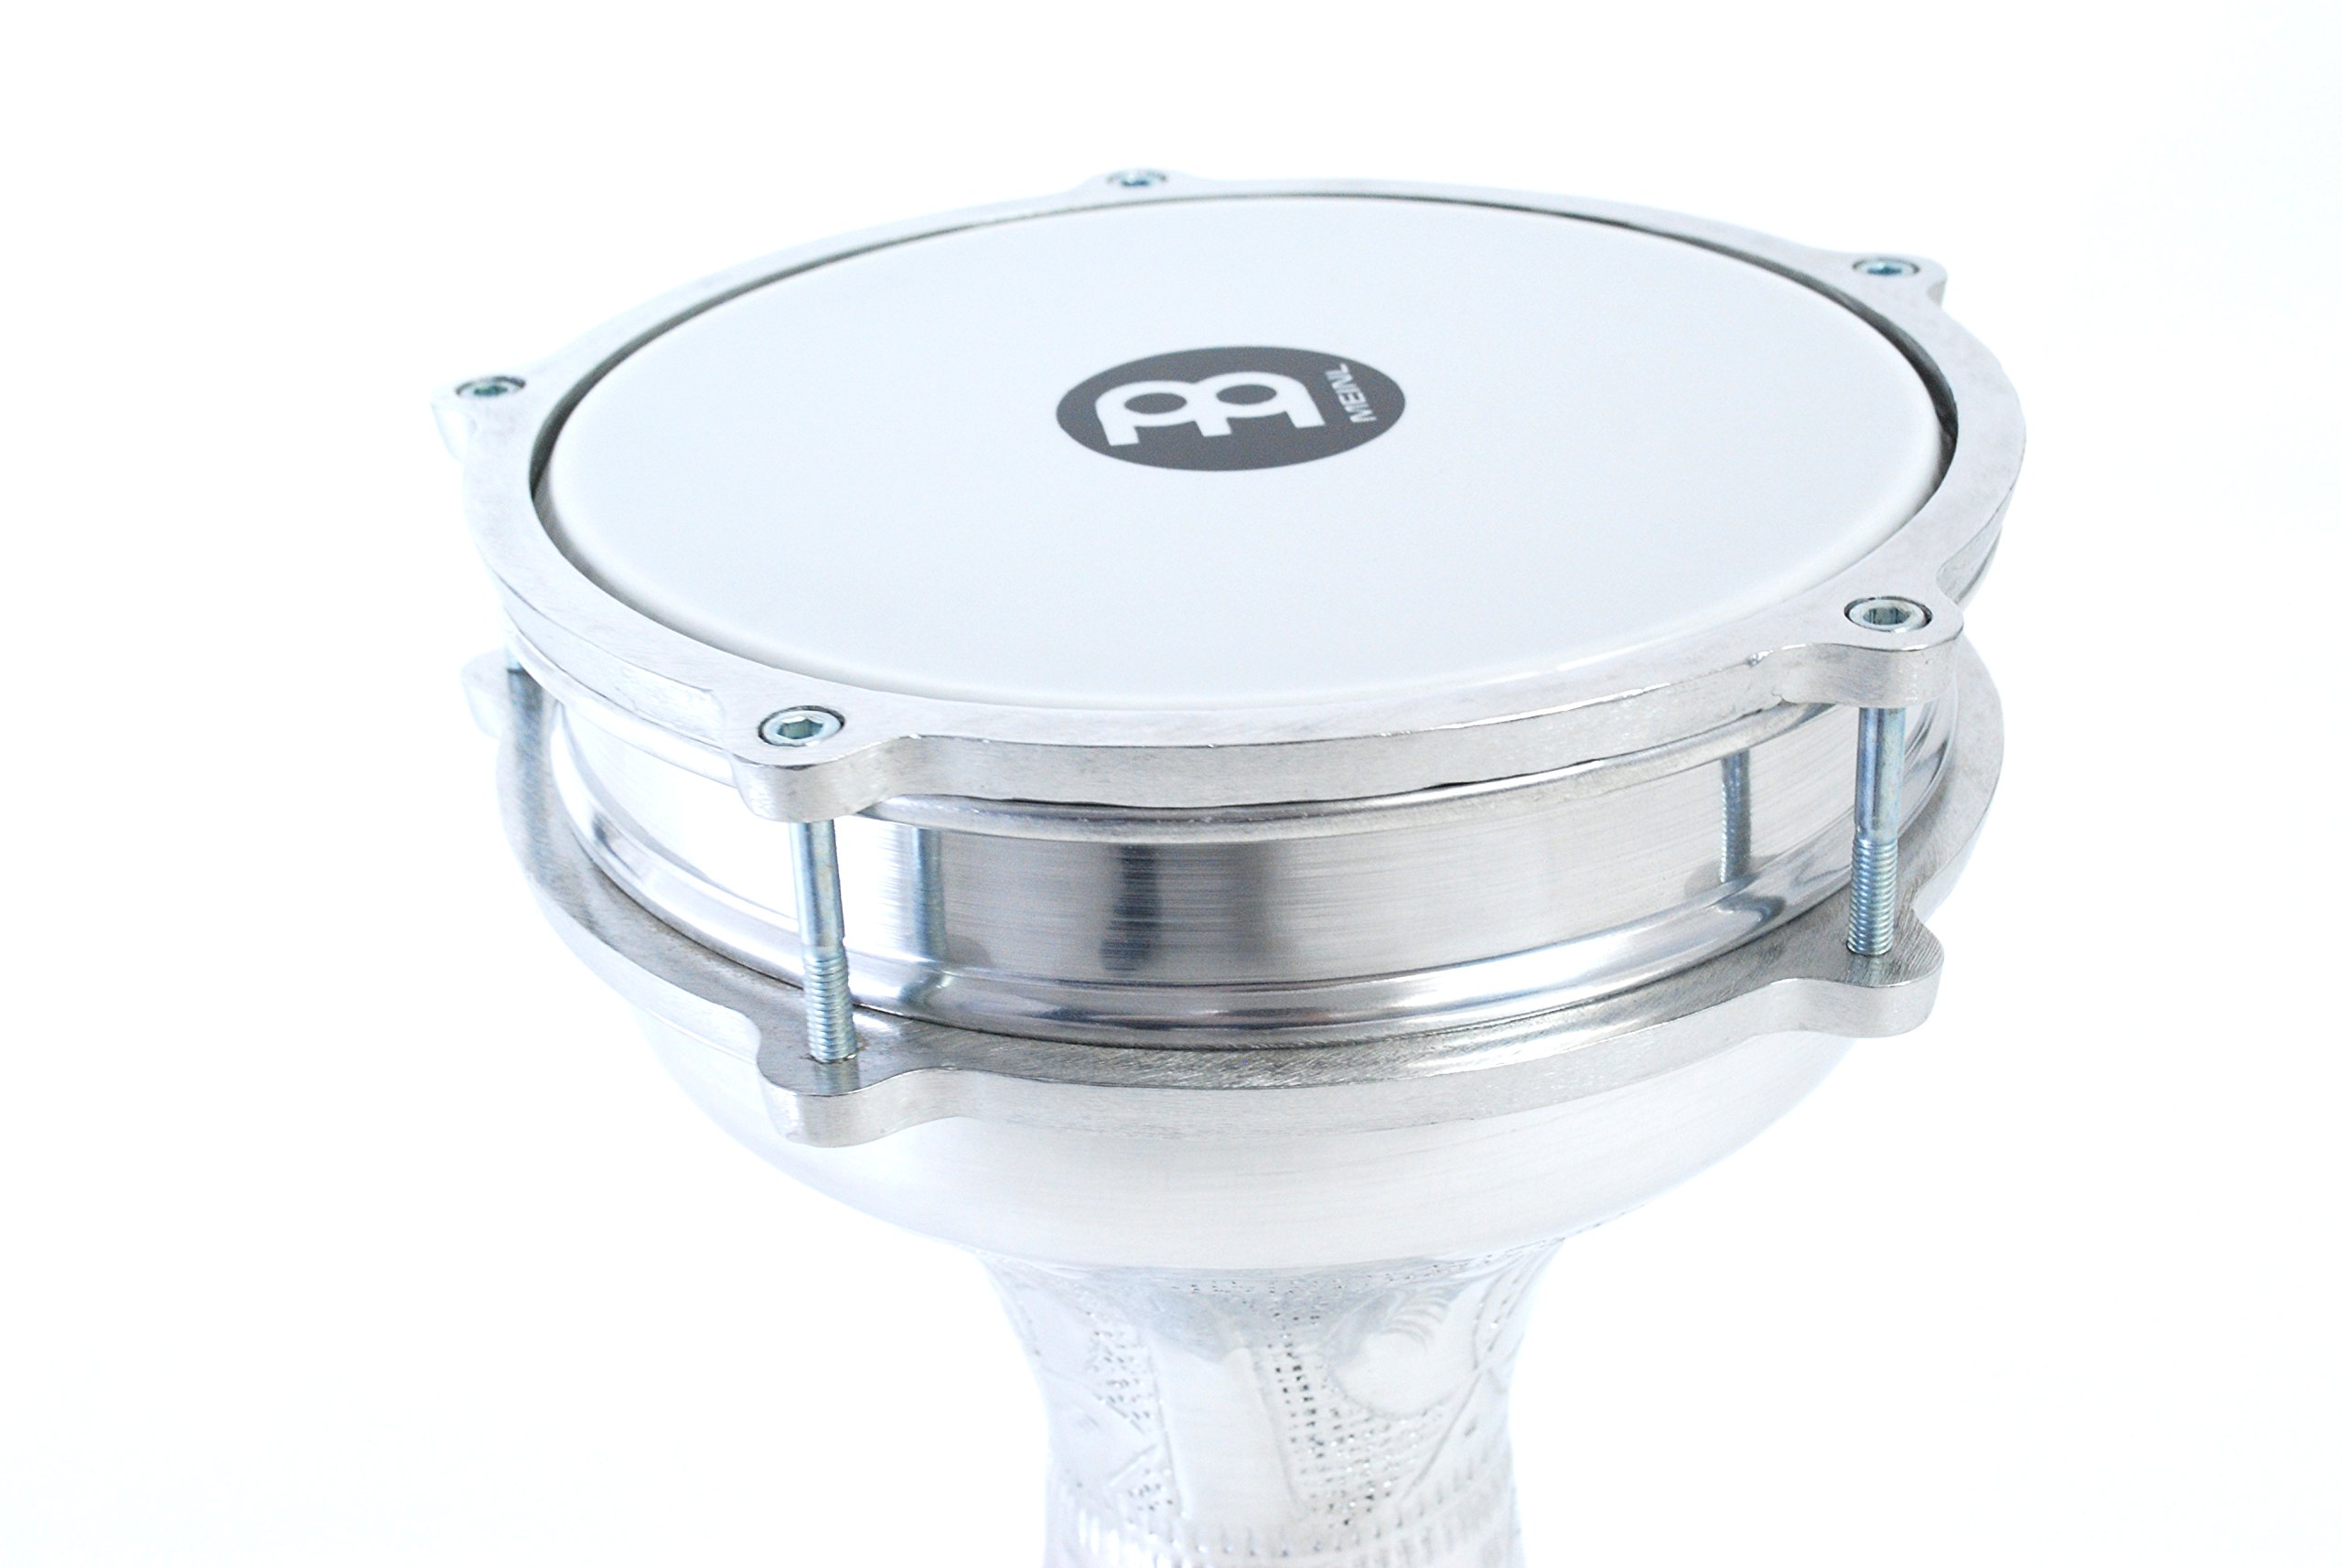 Meinl Percussion Darbuka with Hand Hammered Aluminum Shell-Made in Turkey-8'' Tunable Synthetic Head, 2-Year Warranty (HE-114) by Meinl Percussion (Image #4)